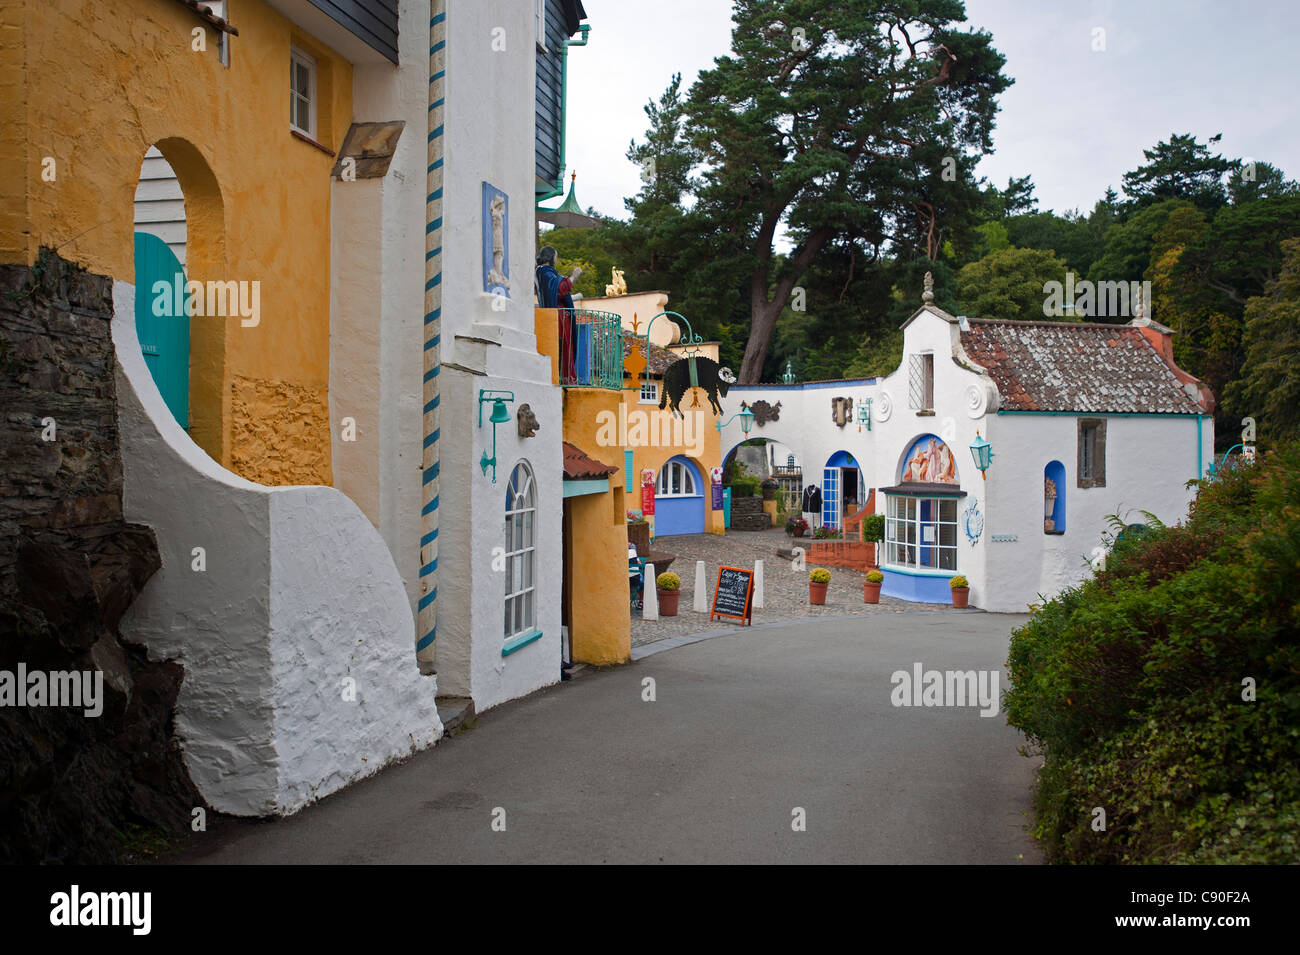 The village of Portmeirion, founded by Welsh architekt Sir Clough Williams-Ellis in 1926, Portmeirion, Wales, UK - Stock Image